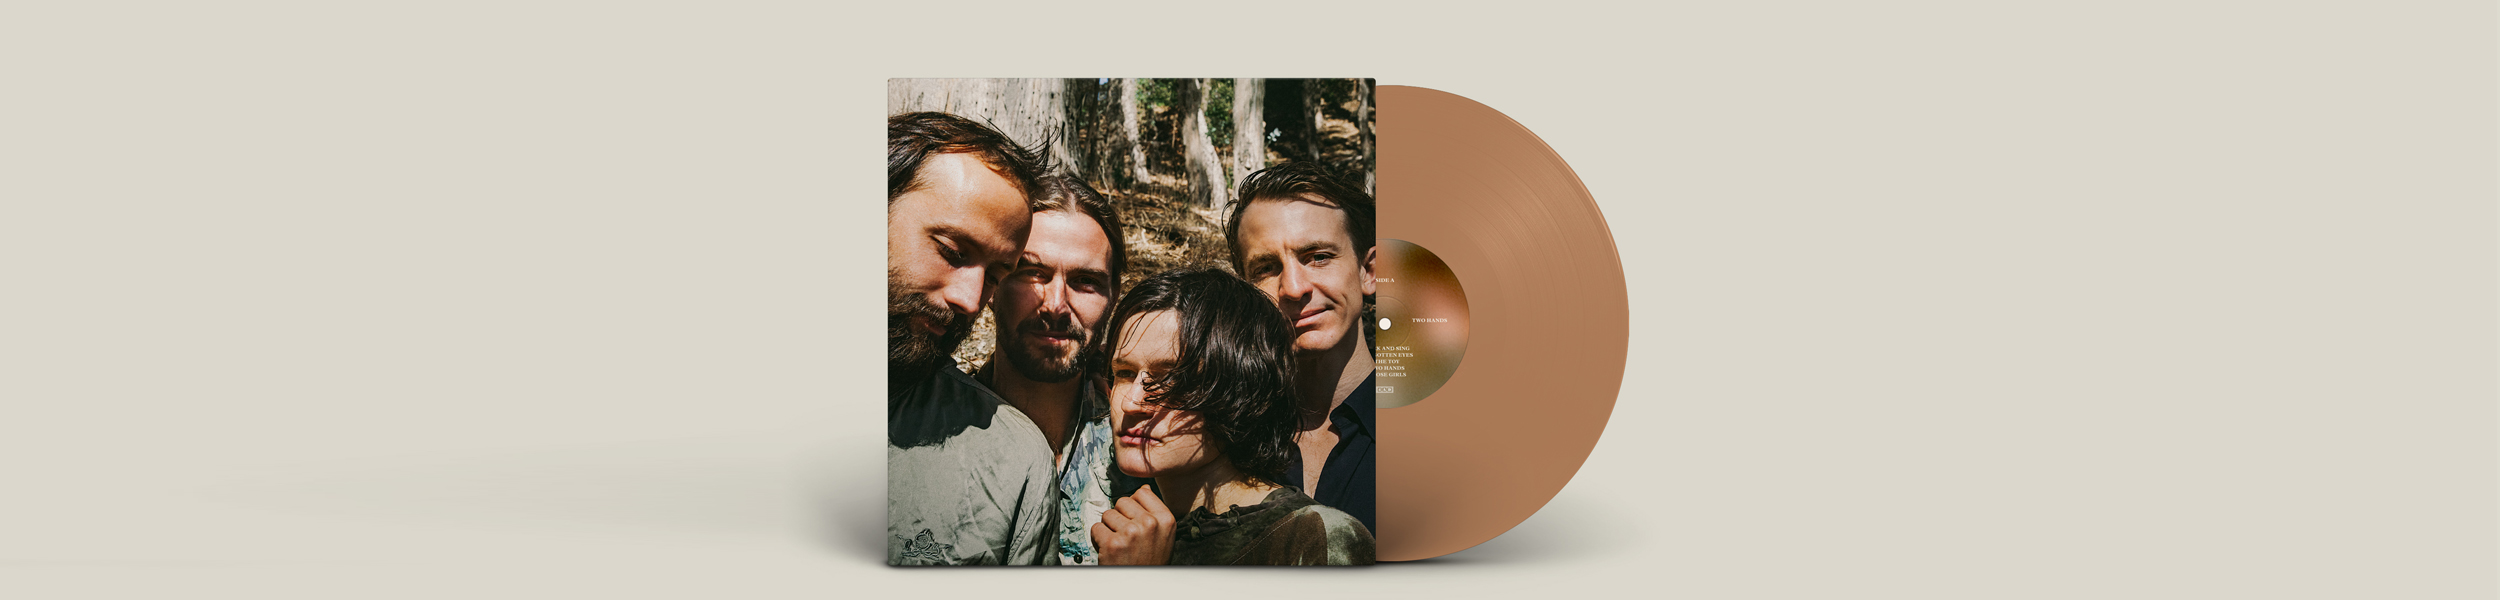 Big Thief - New Album, 'Two Hands', & Lead Single 'Not'